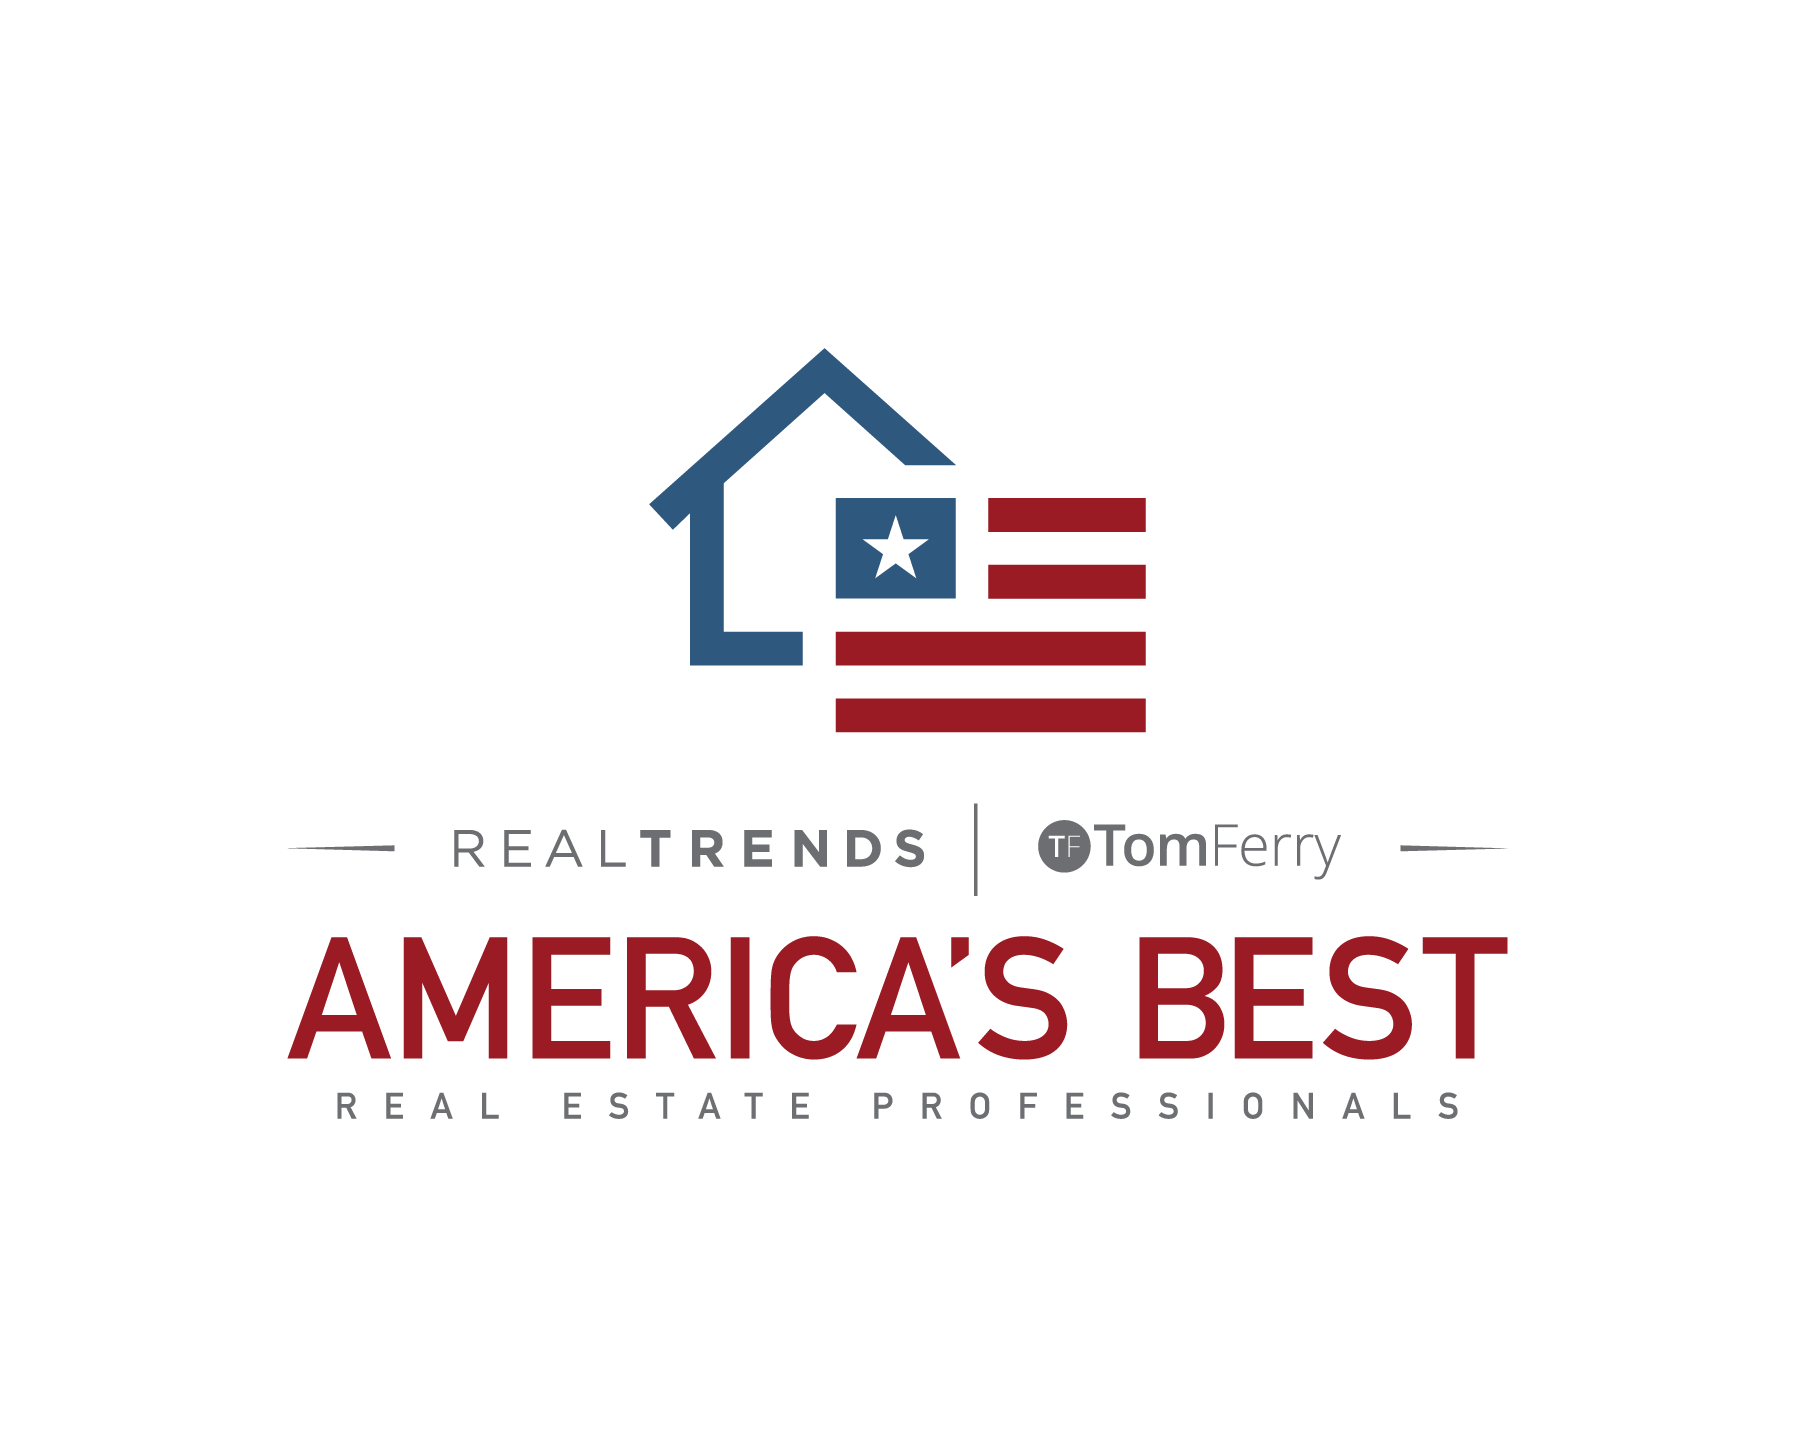 RANKED IN THE TOP 1/2 OF 1% OF 1.4 MILLION LICENSED REAL ESTATE PROFESSIONALS IN THE ENTIRE UNITED STATES